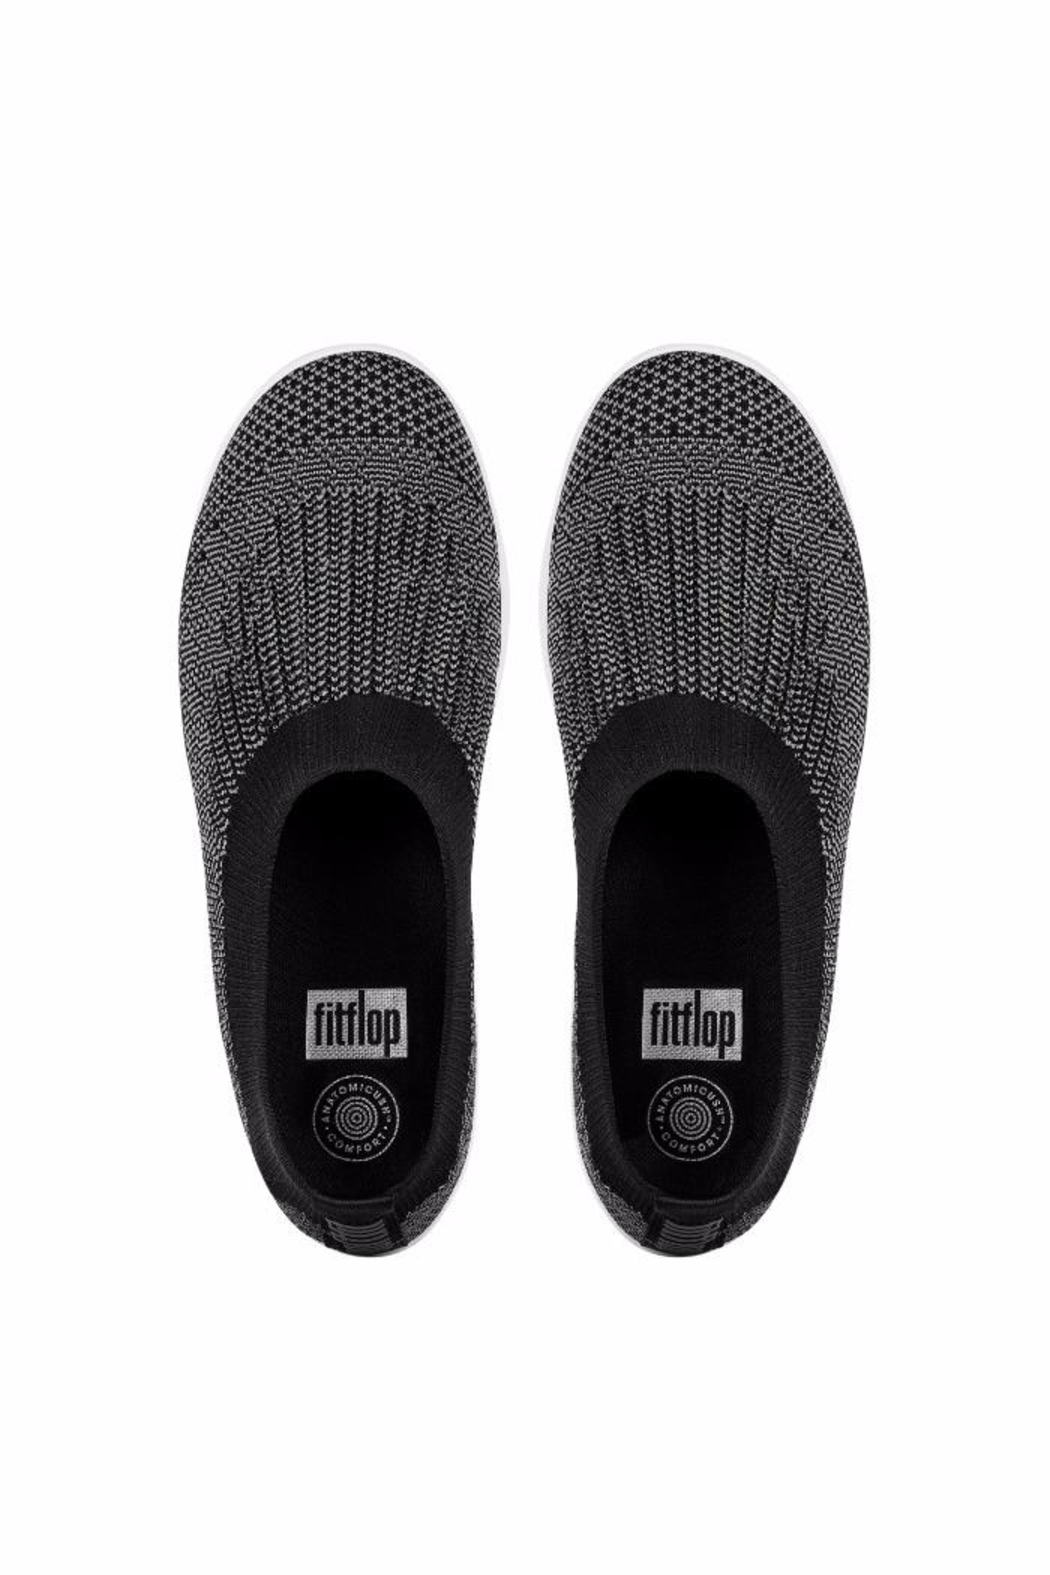 Fitflop Uber Knit Shoes - Front Full Image